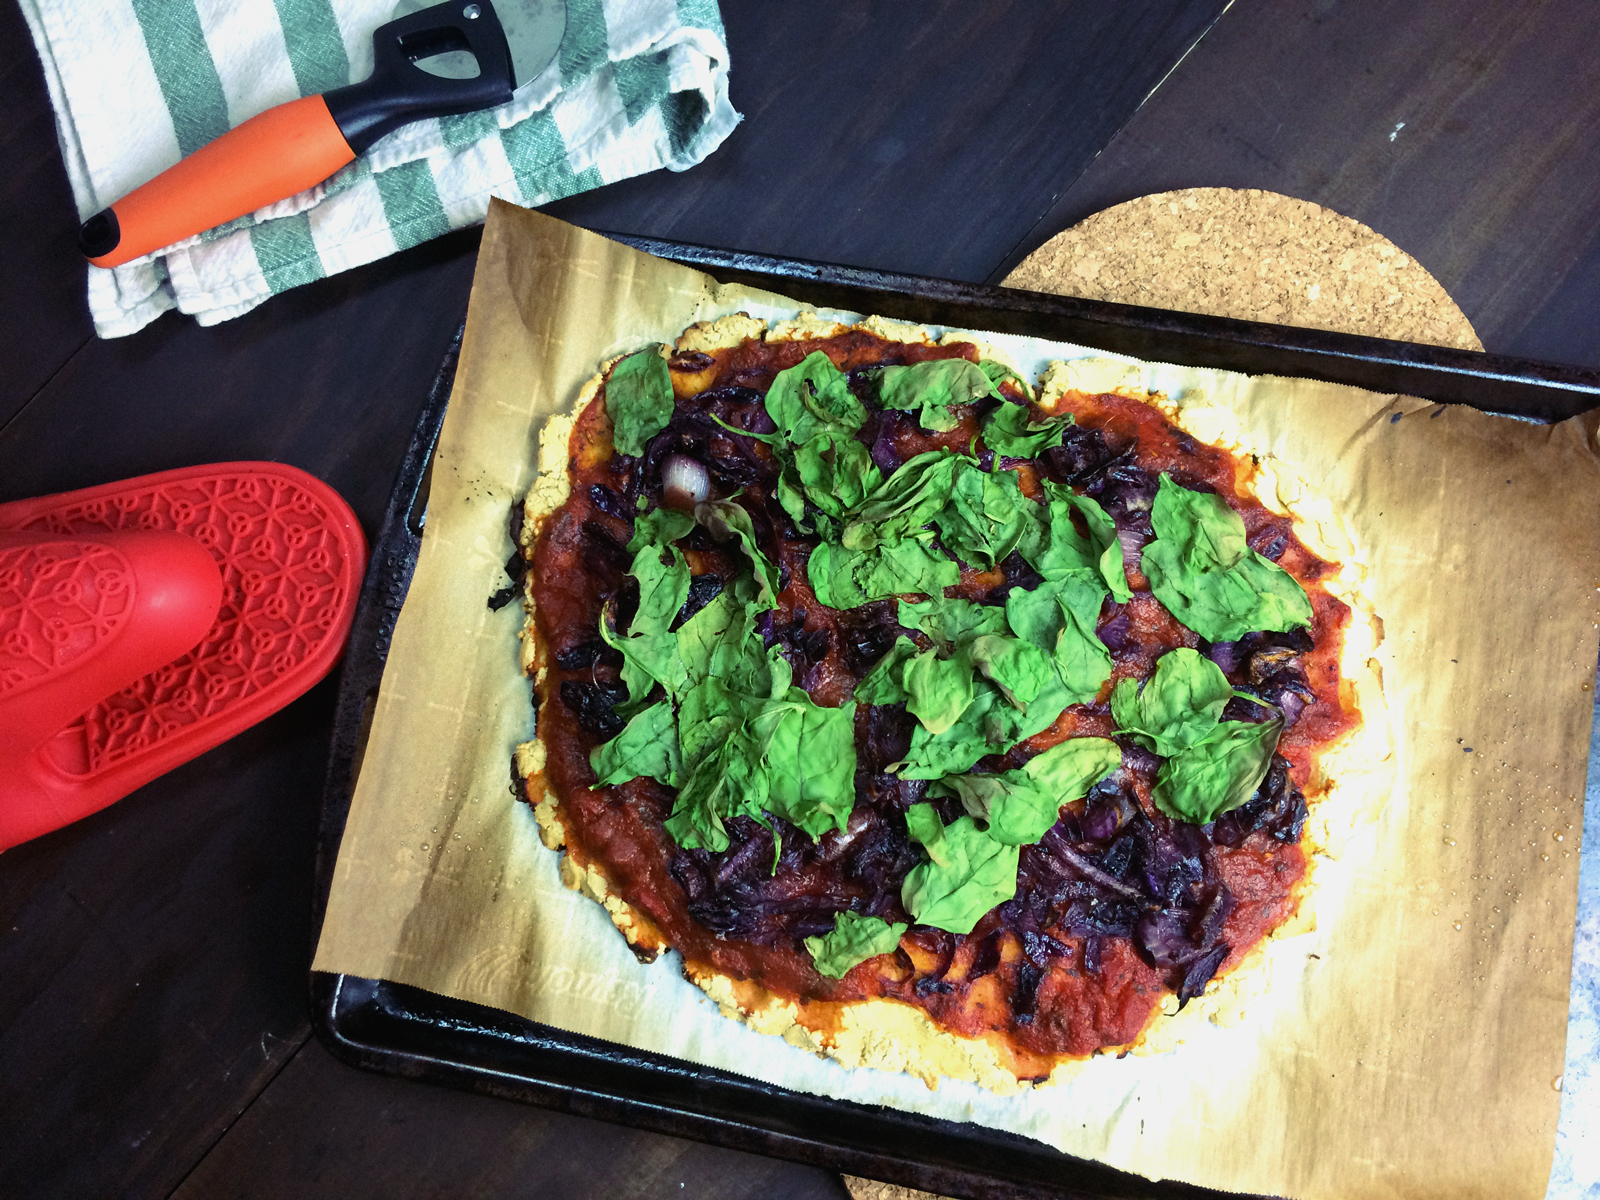 Gluten Free Masa Flatbread w/ Spinach, Caramelized Onions & Red Cabbage